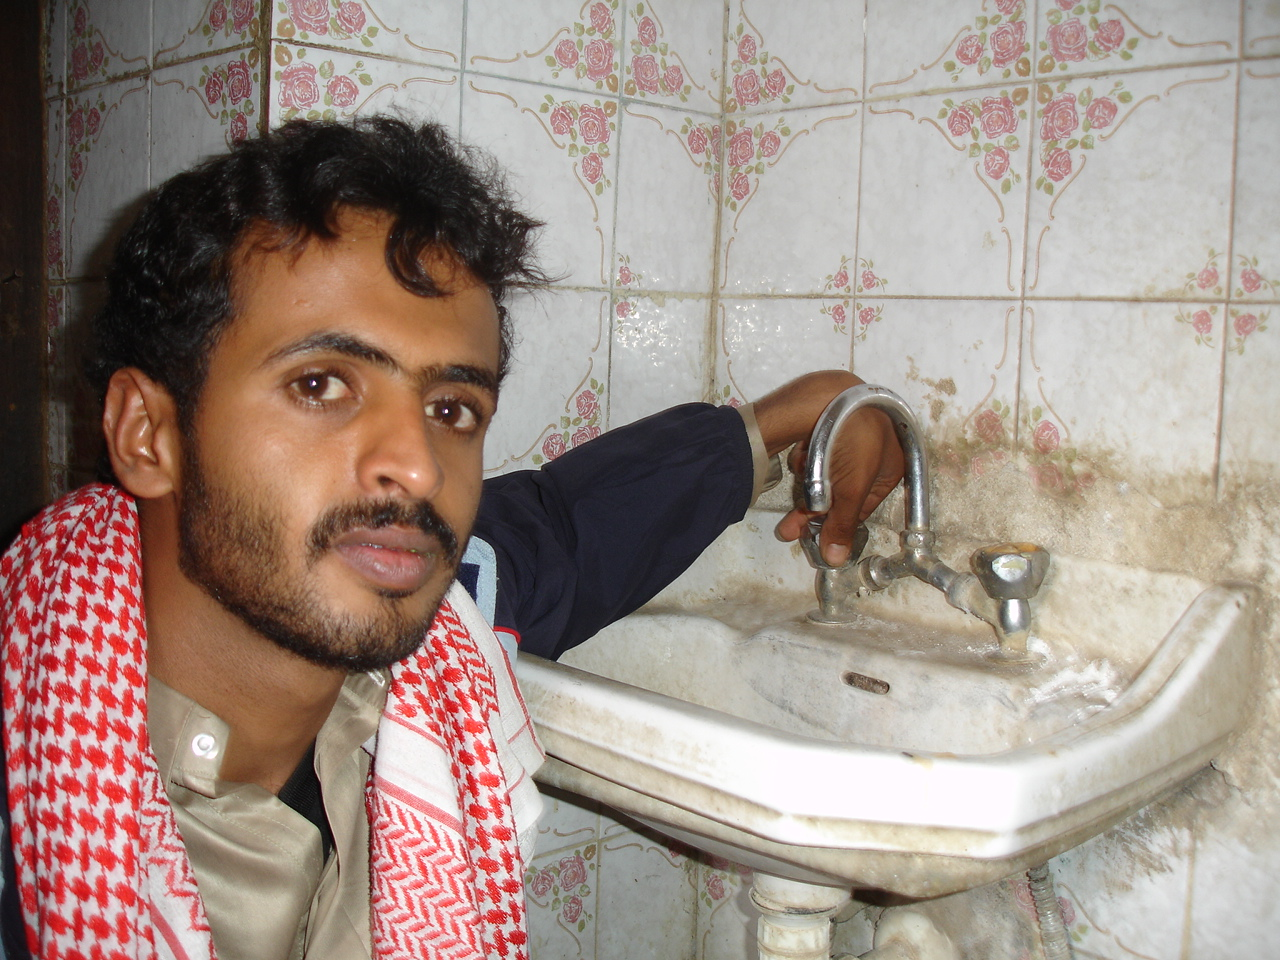 Haider Mohammed Alsady, a 21-year-old university student in Sana'a, says water never comes to his house - a fact forcing him to purchase water from the outside. Only 15 to 25 percent of residents drink from the city's official water network, relying inste